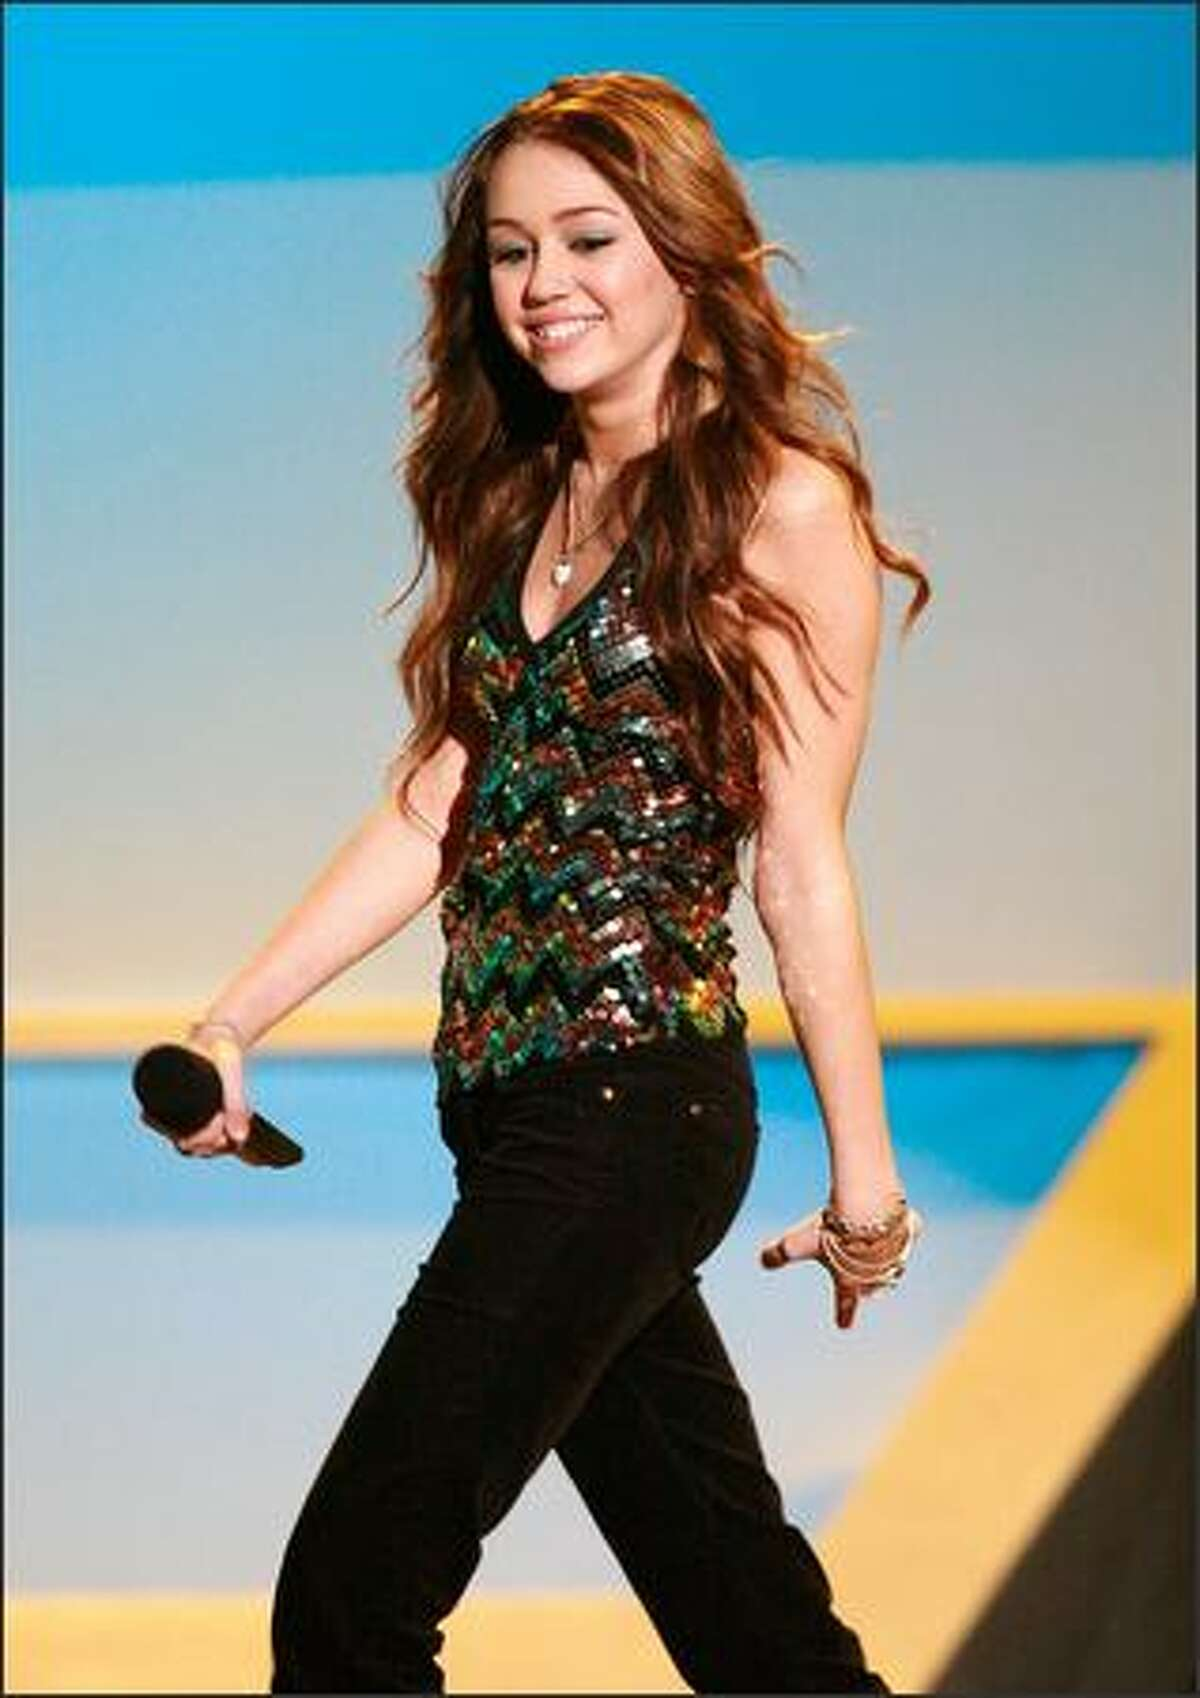 Actress Miley Cyrus walks onstage during the VH1 Big in '06 Awards held at Sony Studios in Culver City, Calif. on Dec. 2, 2006.